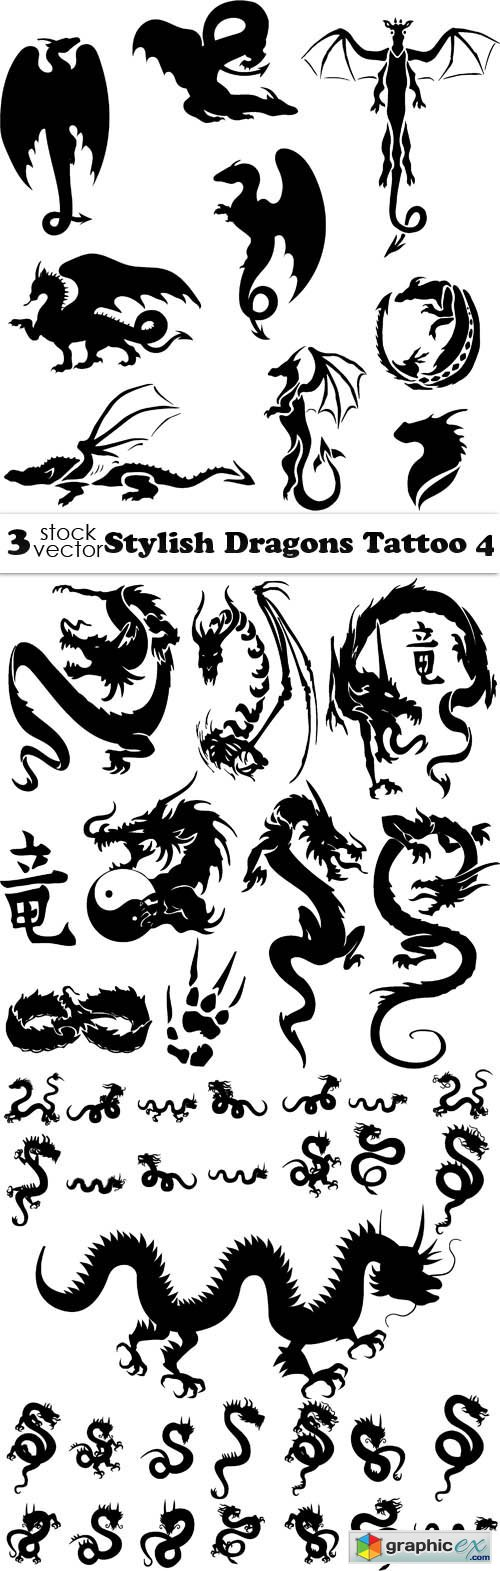 Stylish Dragons Tattoo 4